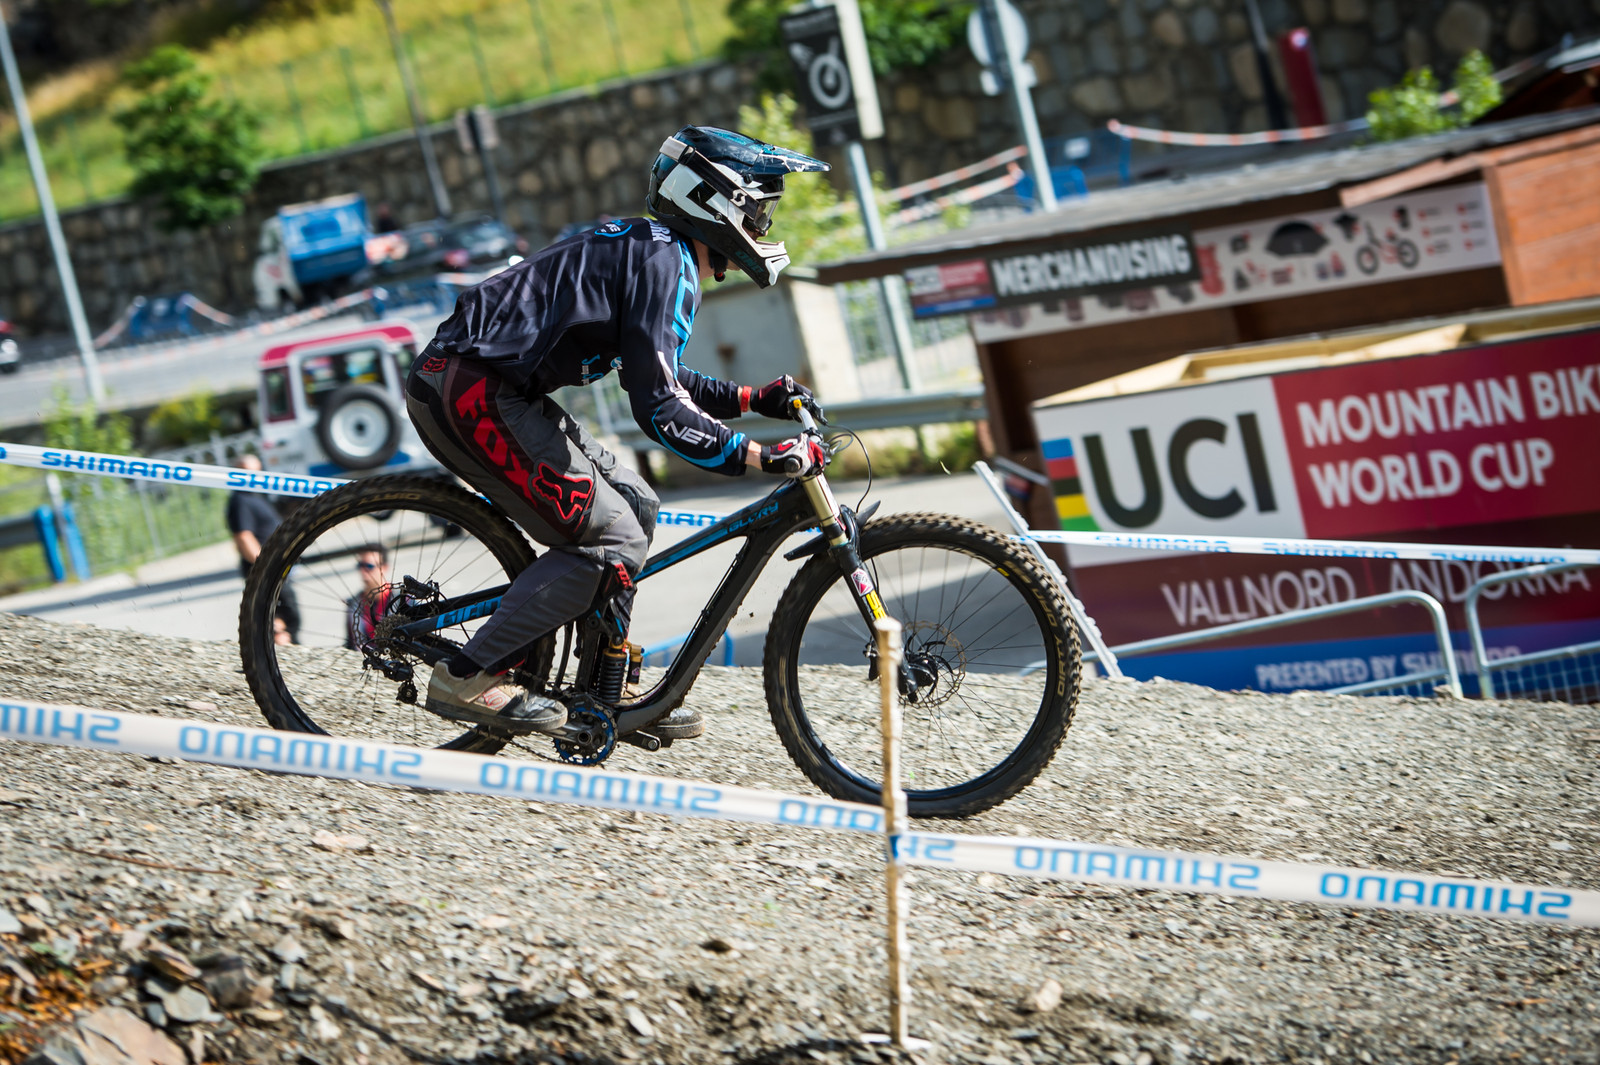 Glory G-Out - G-Out Project: Andorra World Cup 2017 - Mountain Biking Pictures - Vital MTB